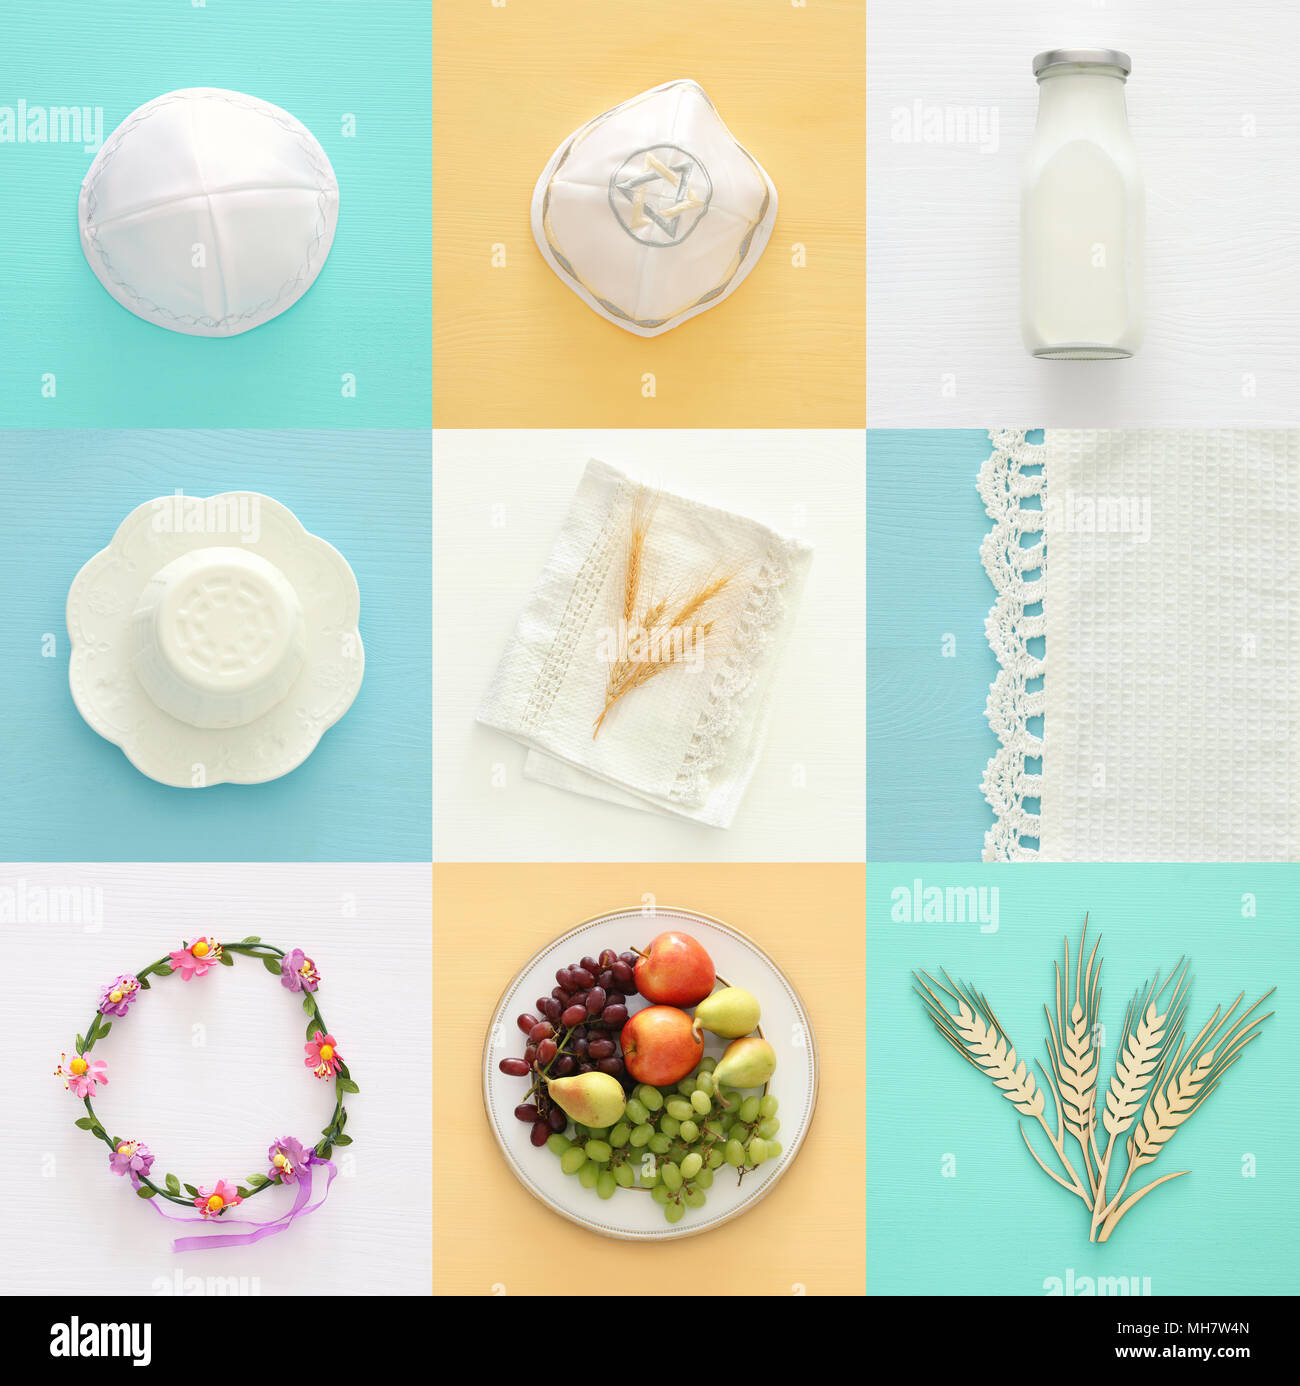 Top View Collage Image Of Dairy Products And Fruits Symbols Of